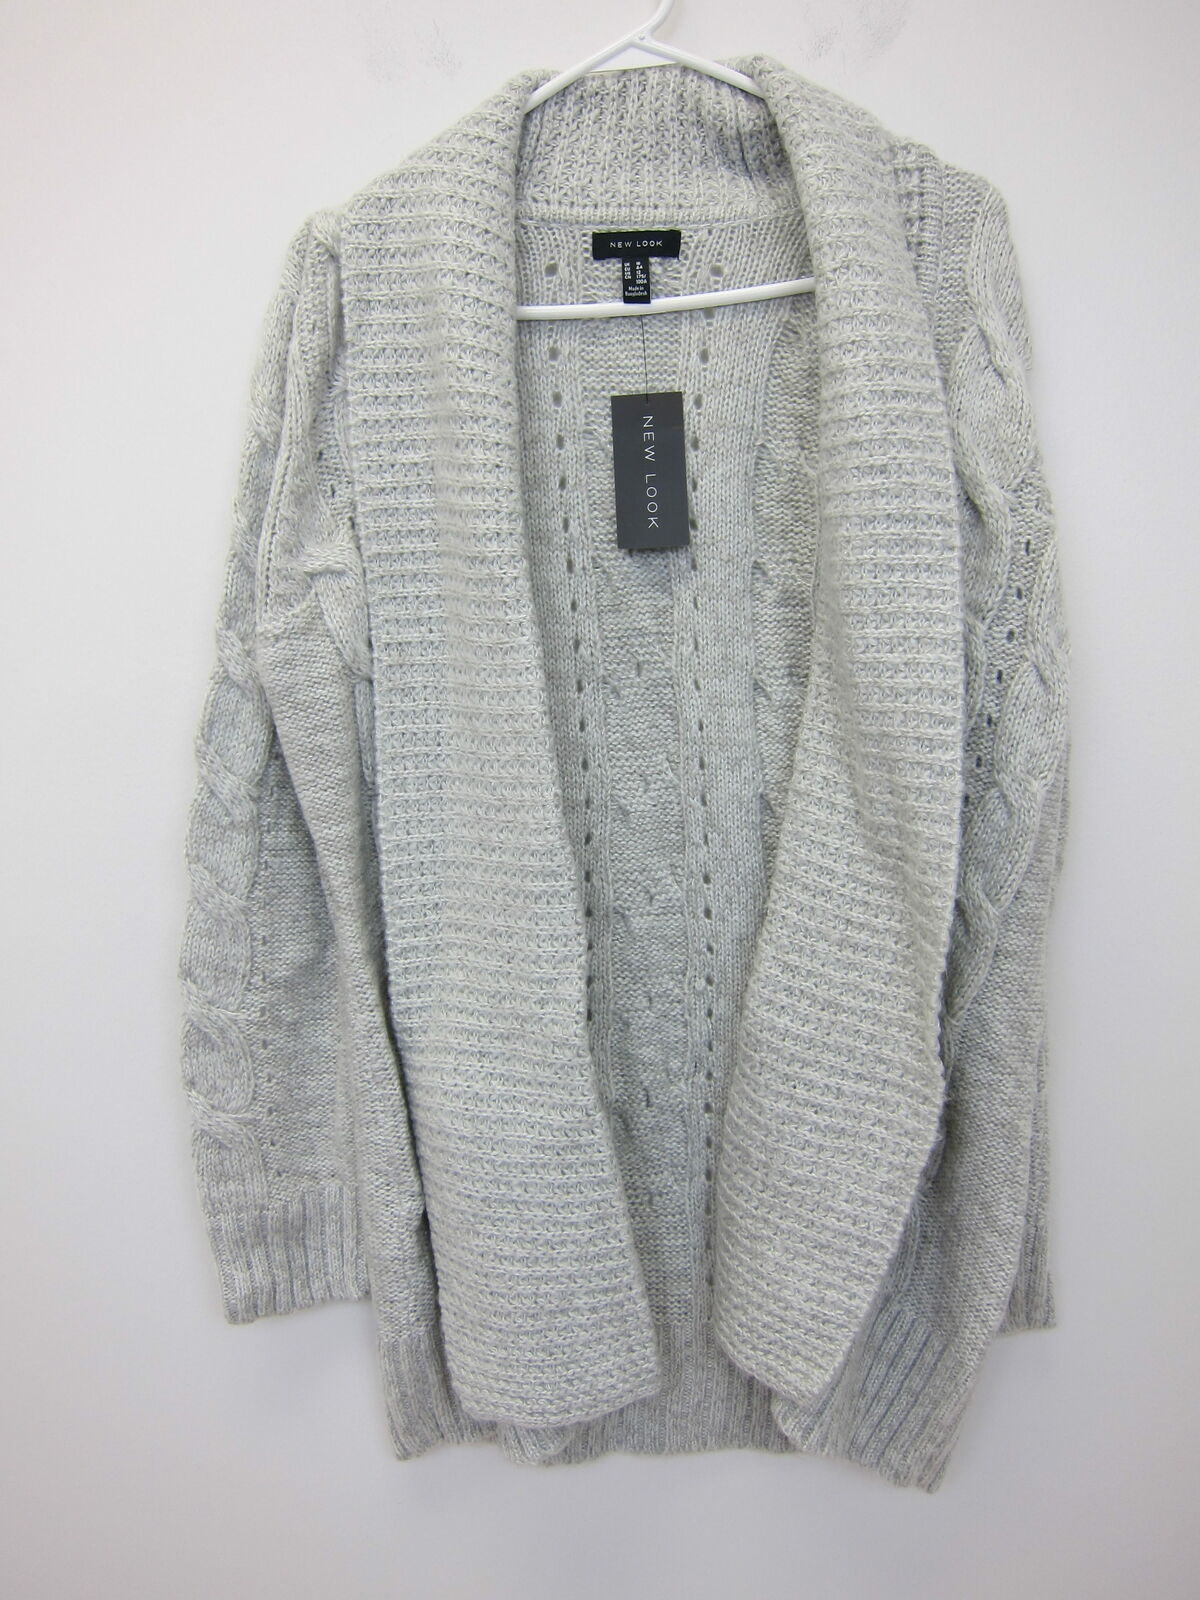 New Look Women's Cable Knit Cardigan Sweater US 12 Grey  NWT